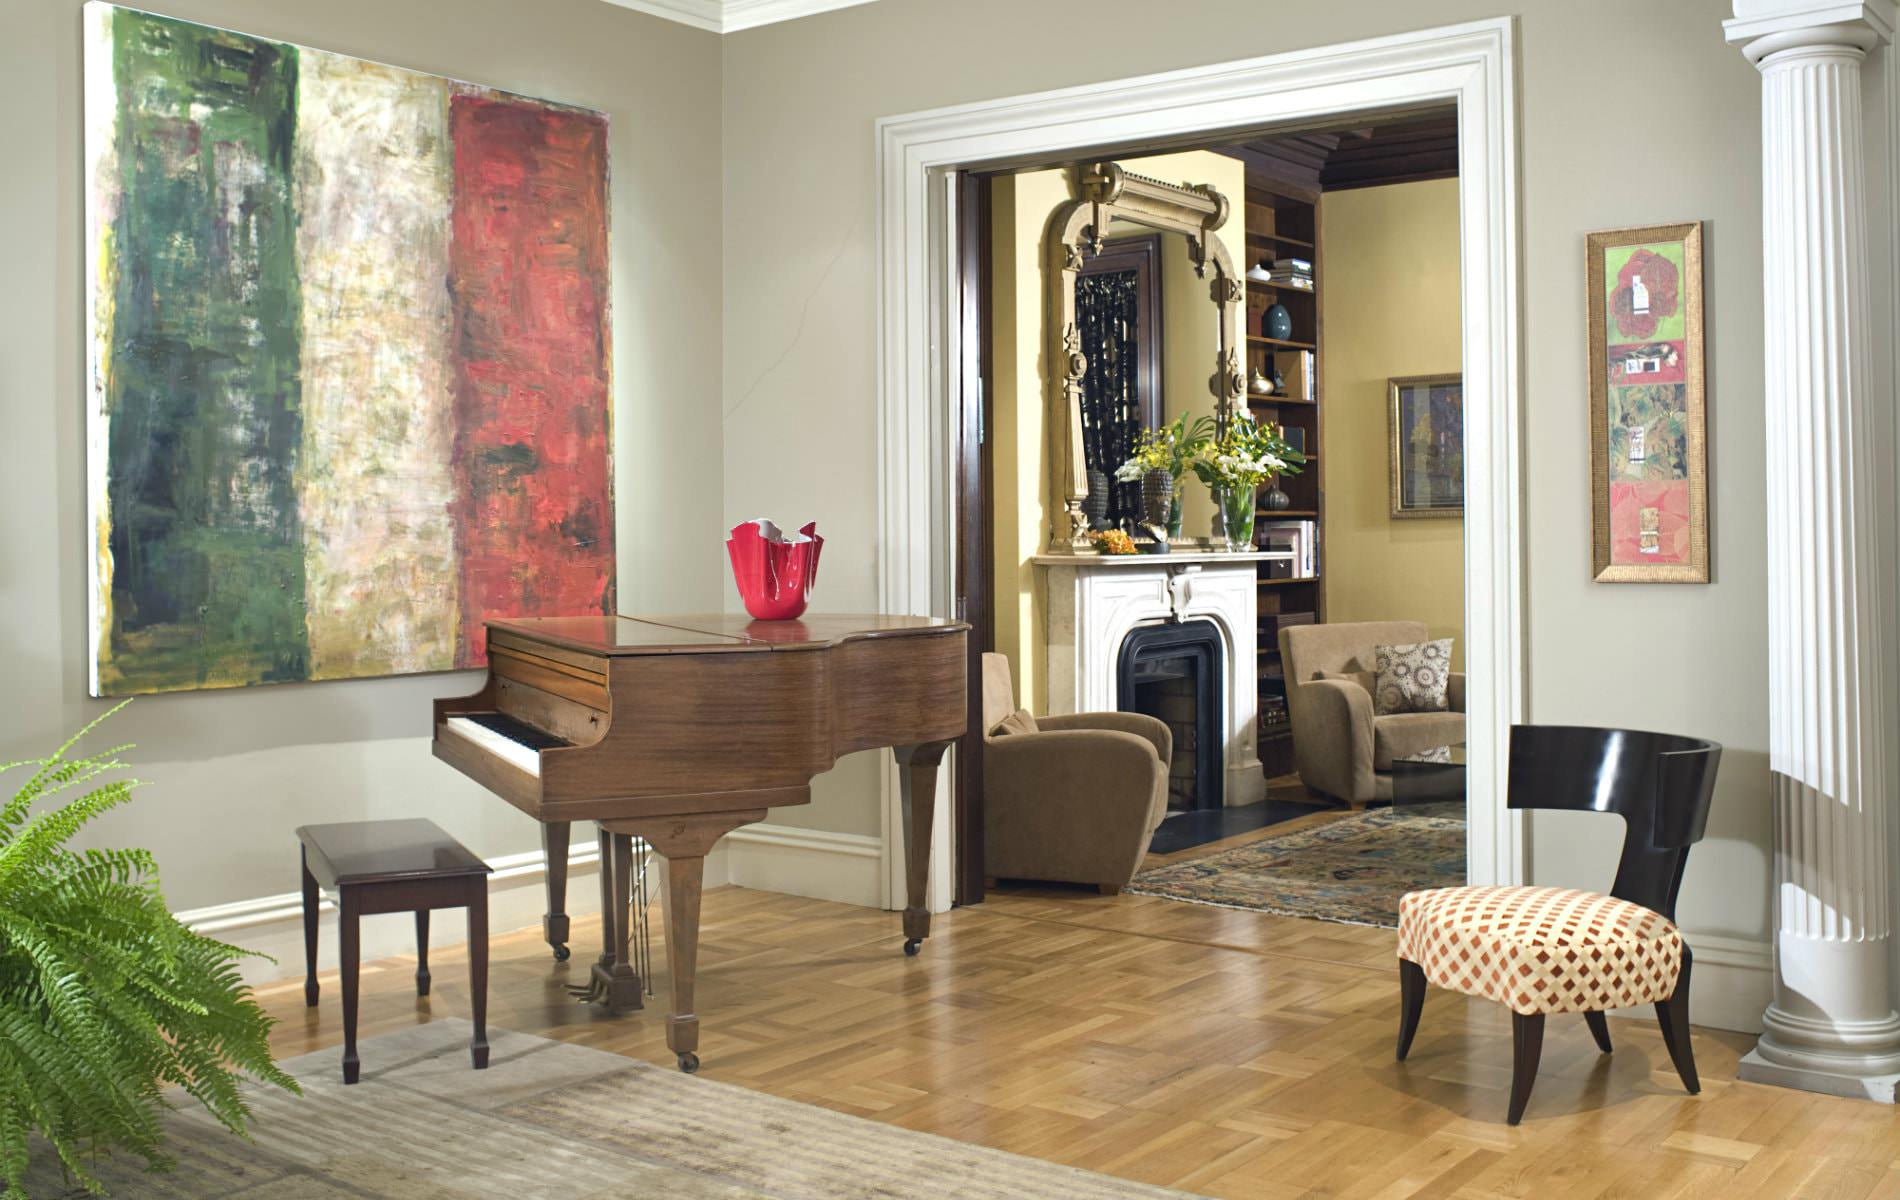 gray painted room, light wood floors, large abstract wall hanging and stained wood grand piano